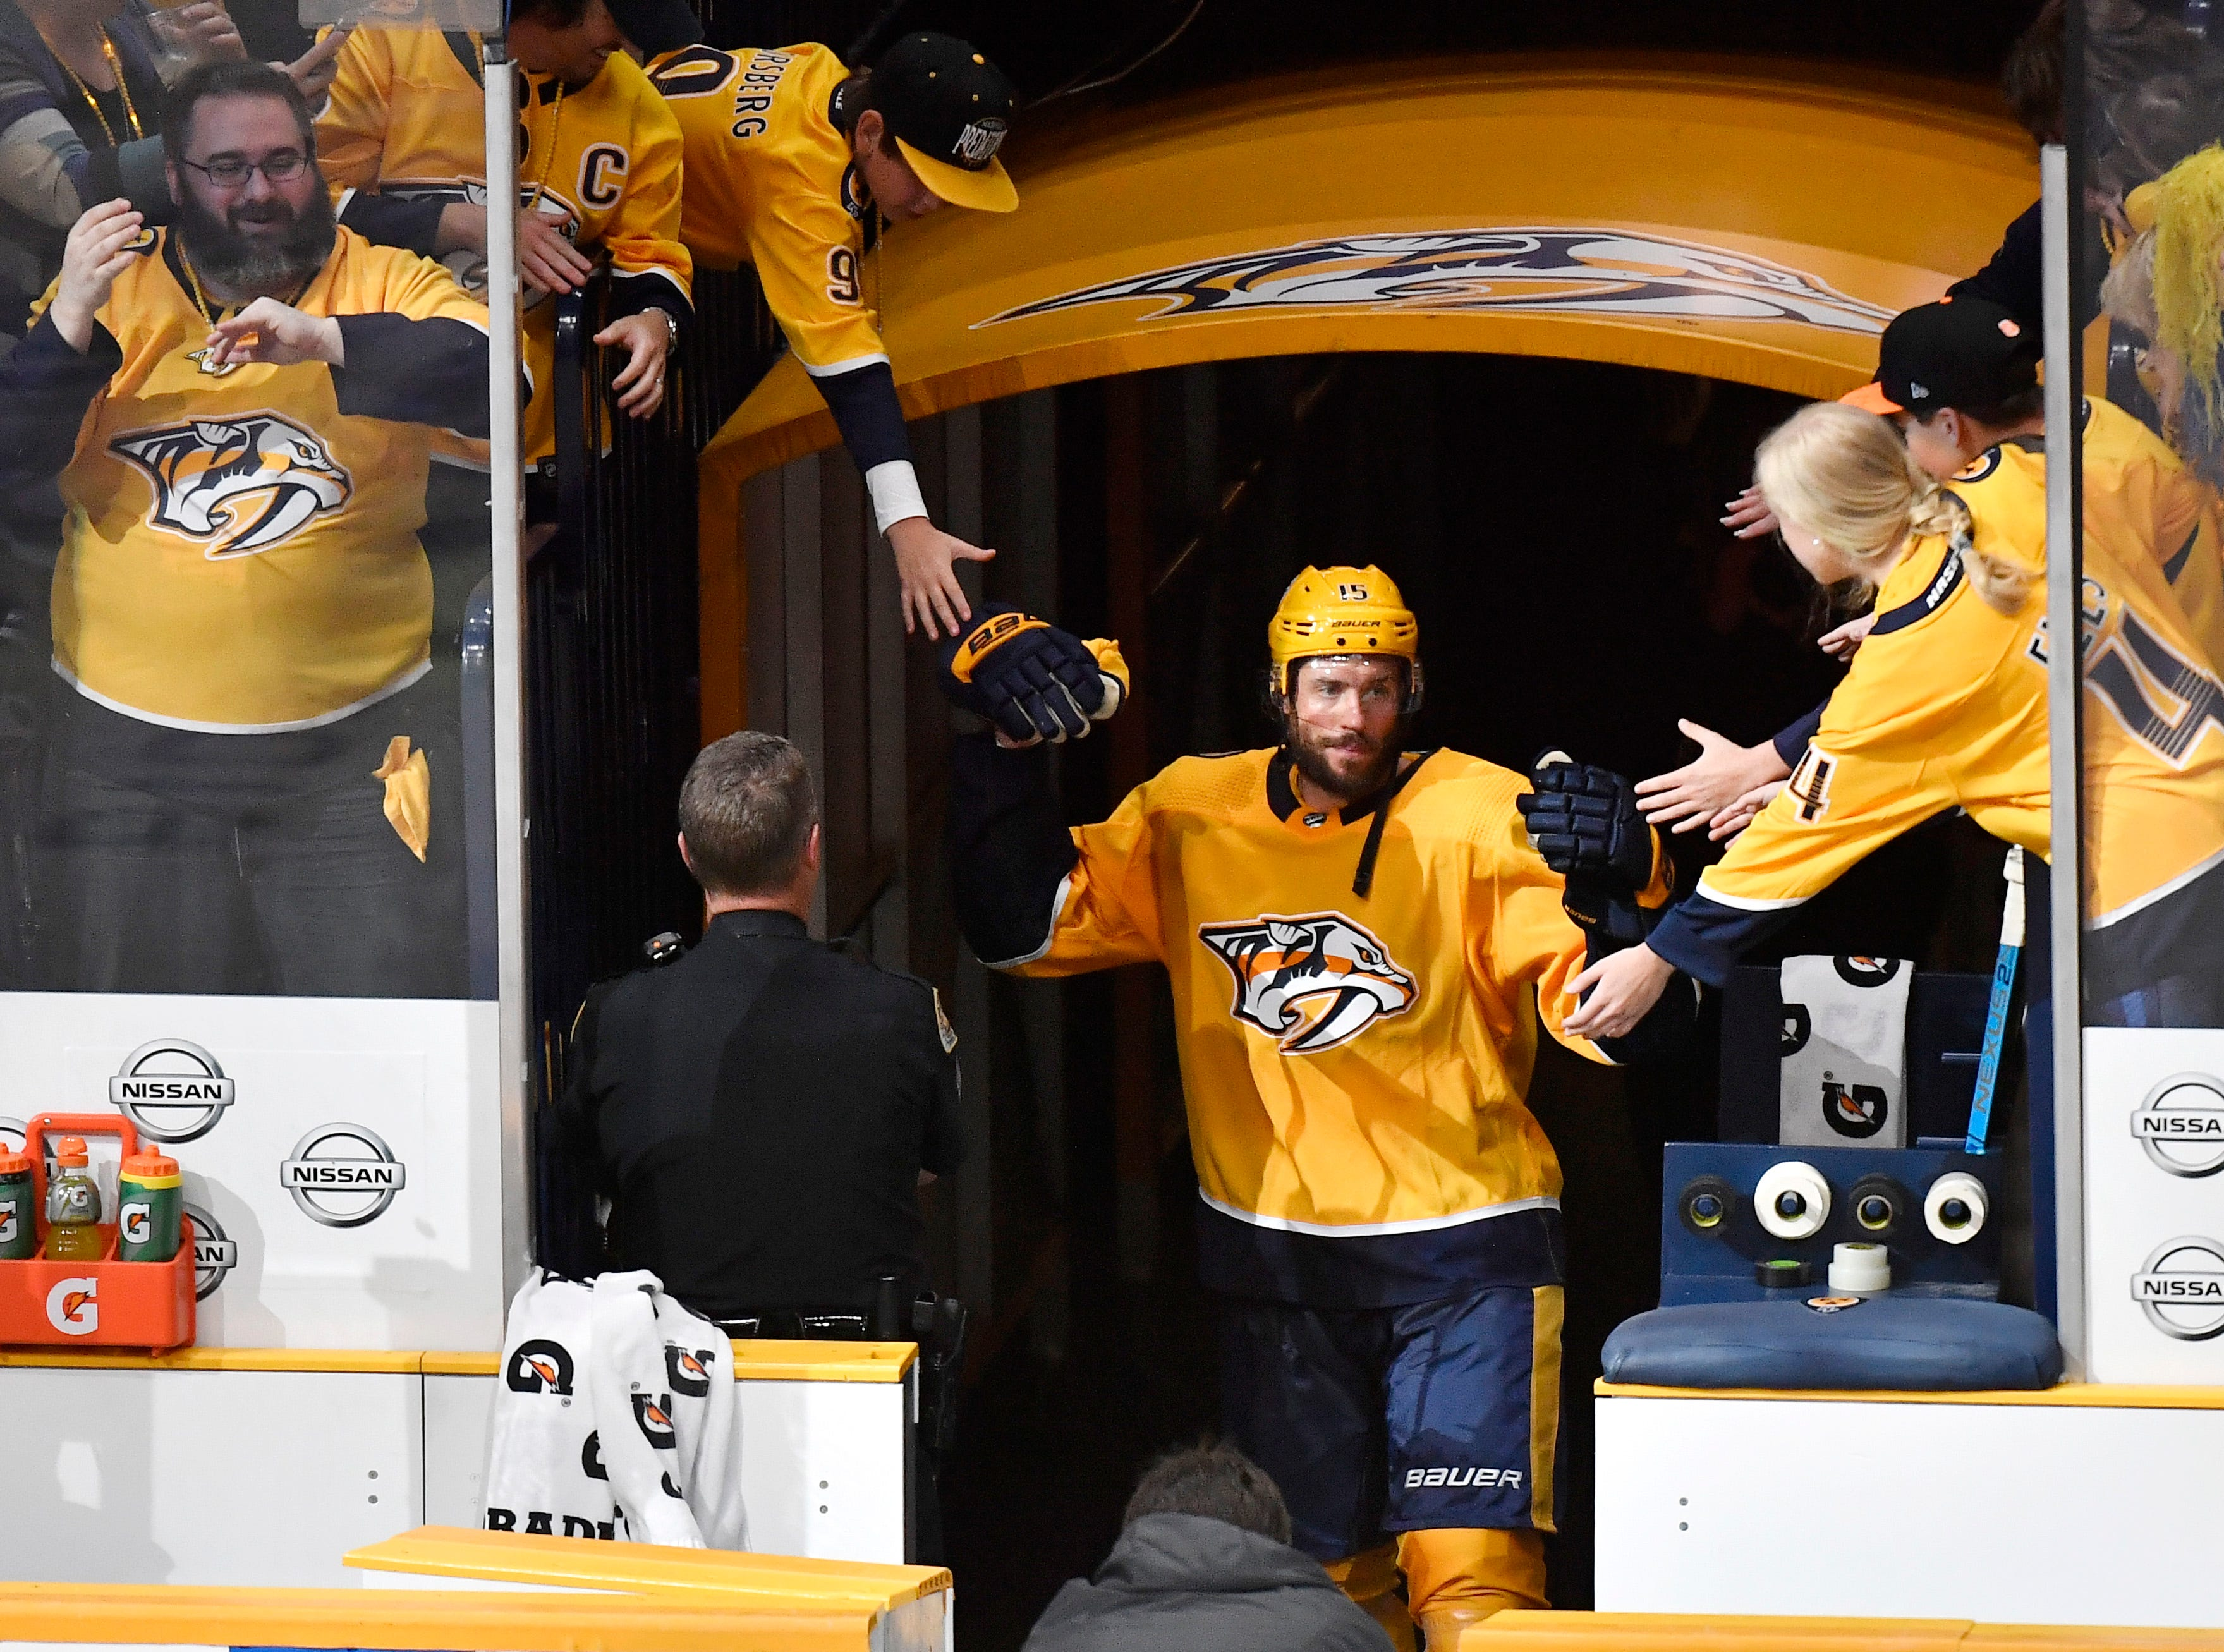 Nashville Predators right wing Craig Smith (15) returns to the ice to be recognized after his game-winning goal in overtime giving the Predators a 2-1 win over the Dallas Stars in the divisional semifinal game at Bridgestone Arena in Nashville, Tenn., Saturday, April 13, 2019.